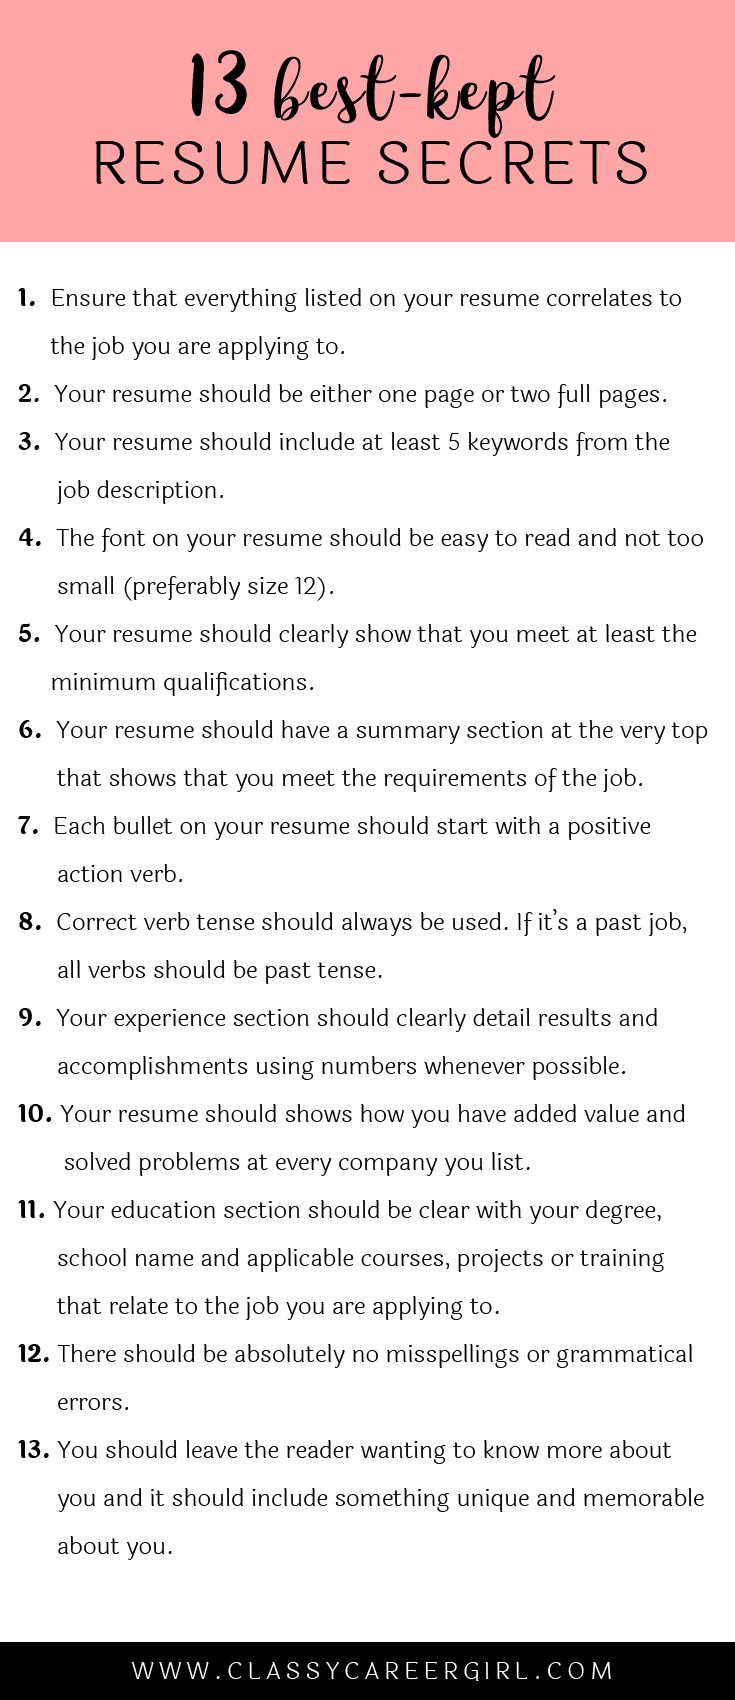 Opposenewapstandardsus  Winsome  Ideas About Resume On Pinterest  Cv Format Resume Cv And  With Exquisite Some Hiring Managers Will Toss Your Resume Out If You Dont Know These  With Cool Resume Description For Cashier Also General Resume Summary In Addition Ma Resume And Human Resources Sample Resume As Well As Entry Level Social Work Resume Additionally Sample Medical Resume From Pinterestcom With Opposenewapstandardsus  Exquisite  Ideas About Resume On Pinterest  Cv Format Resume Cv And  With Cool Some Hiring Managers Will Toss Your Resume Out If You Dont Know These  And Winsome Resume Description For Cashier Also General Resume Summary In Addition Ma Resume From Pinterestcom